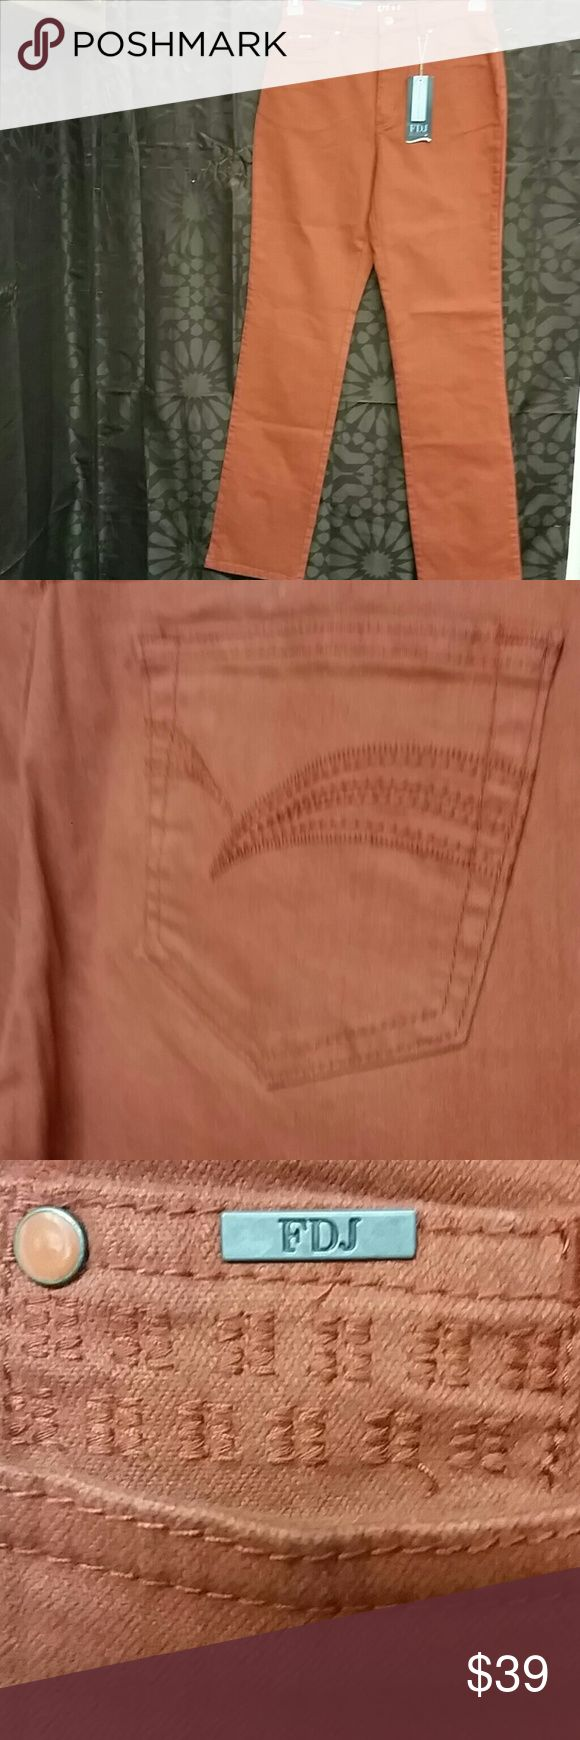 NWT FDJ Jeans Suzanne style size 8 These are new with tags French Dressing Jeans size 8 Suzanne Style color is pumpkin straight leg material is 96% cotton and 4% Lycra measurements laying flat or waist 14 and a half inches length 43 inches French Dressing Jeans  Jeans